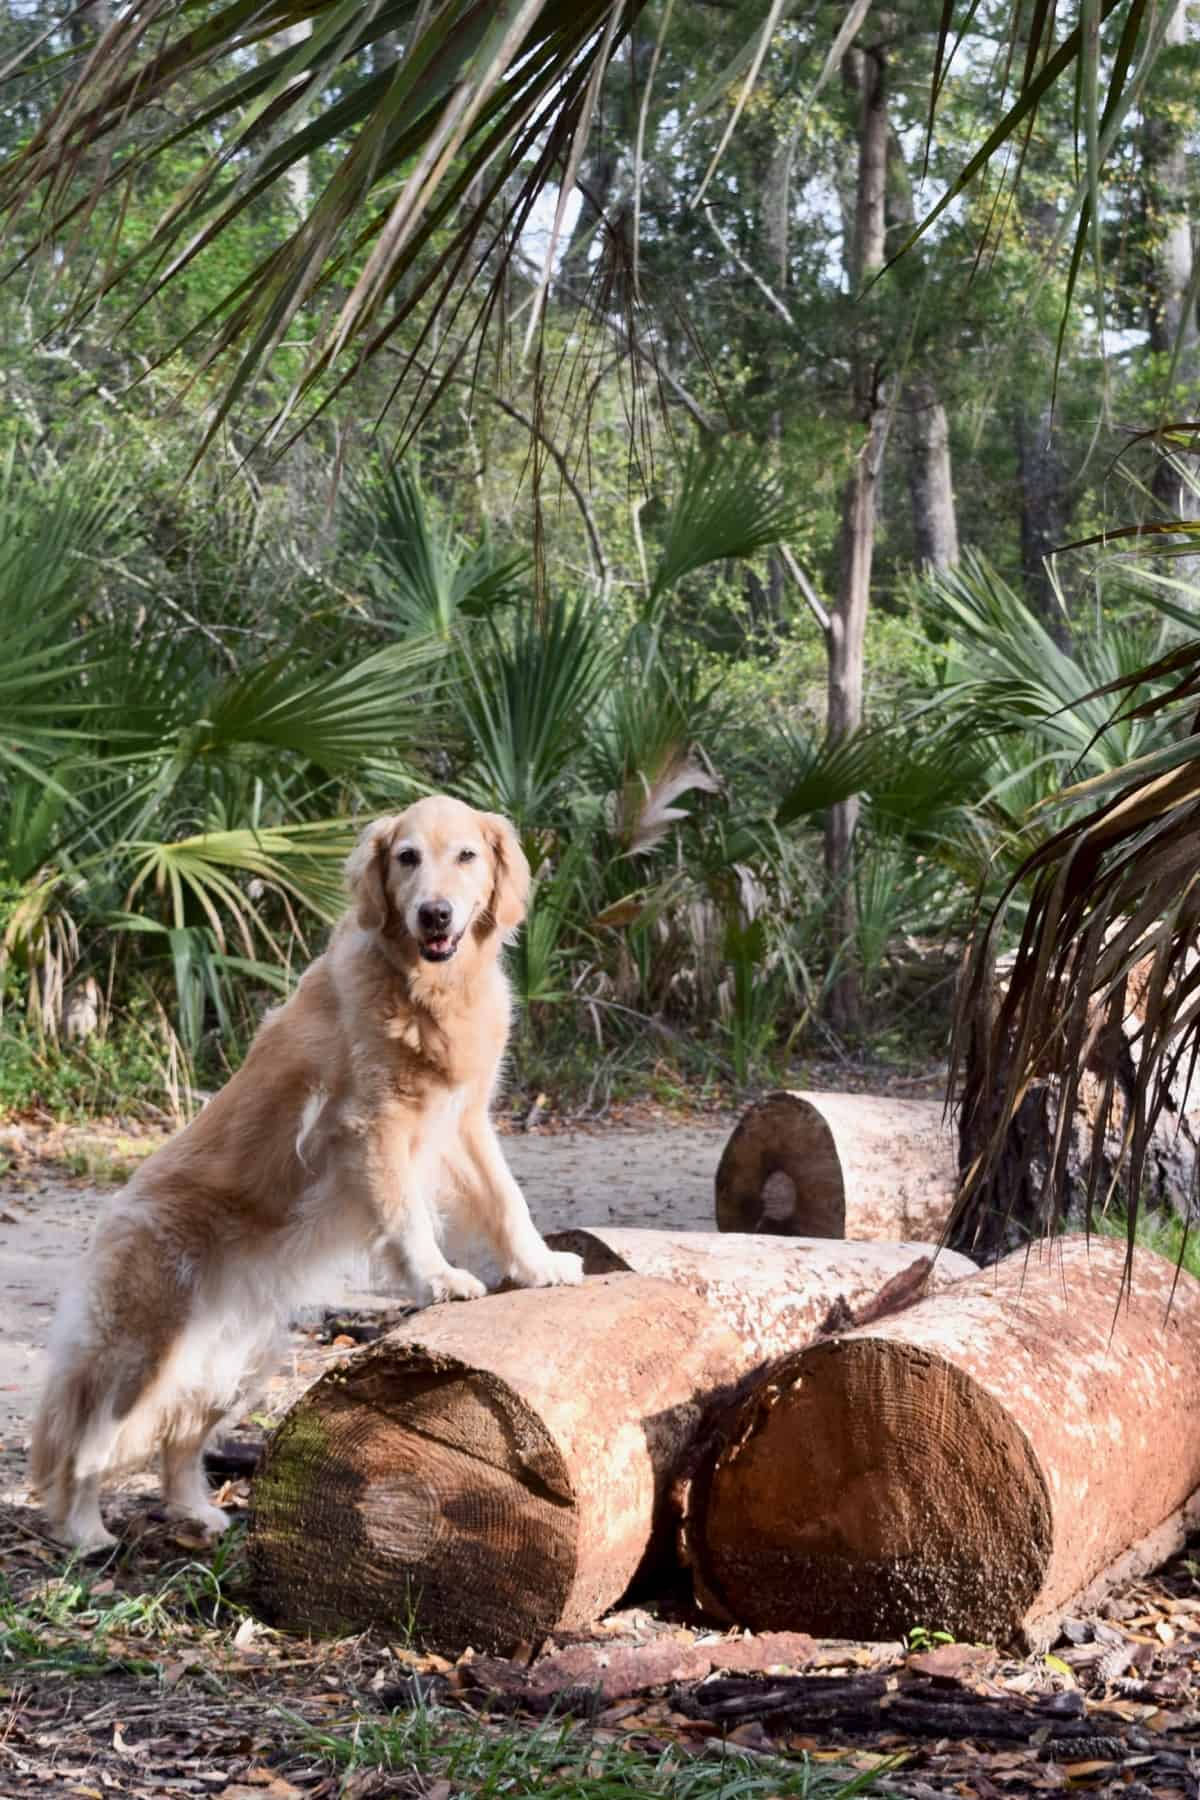 Golden retriever with saw palmetto.